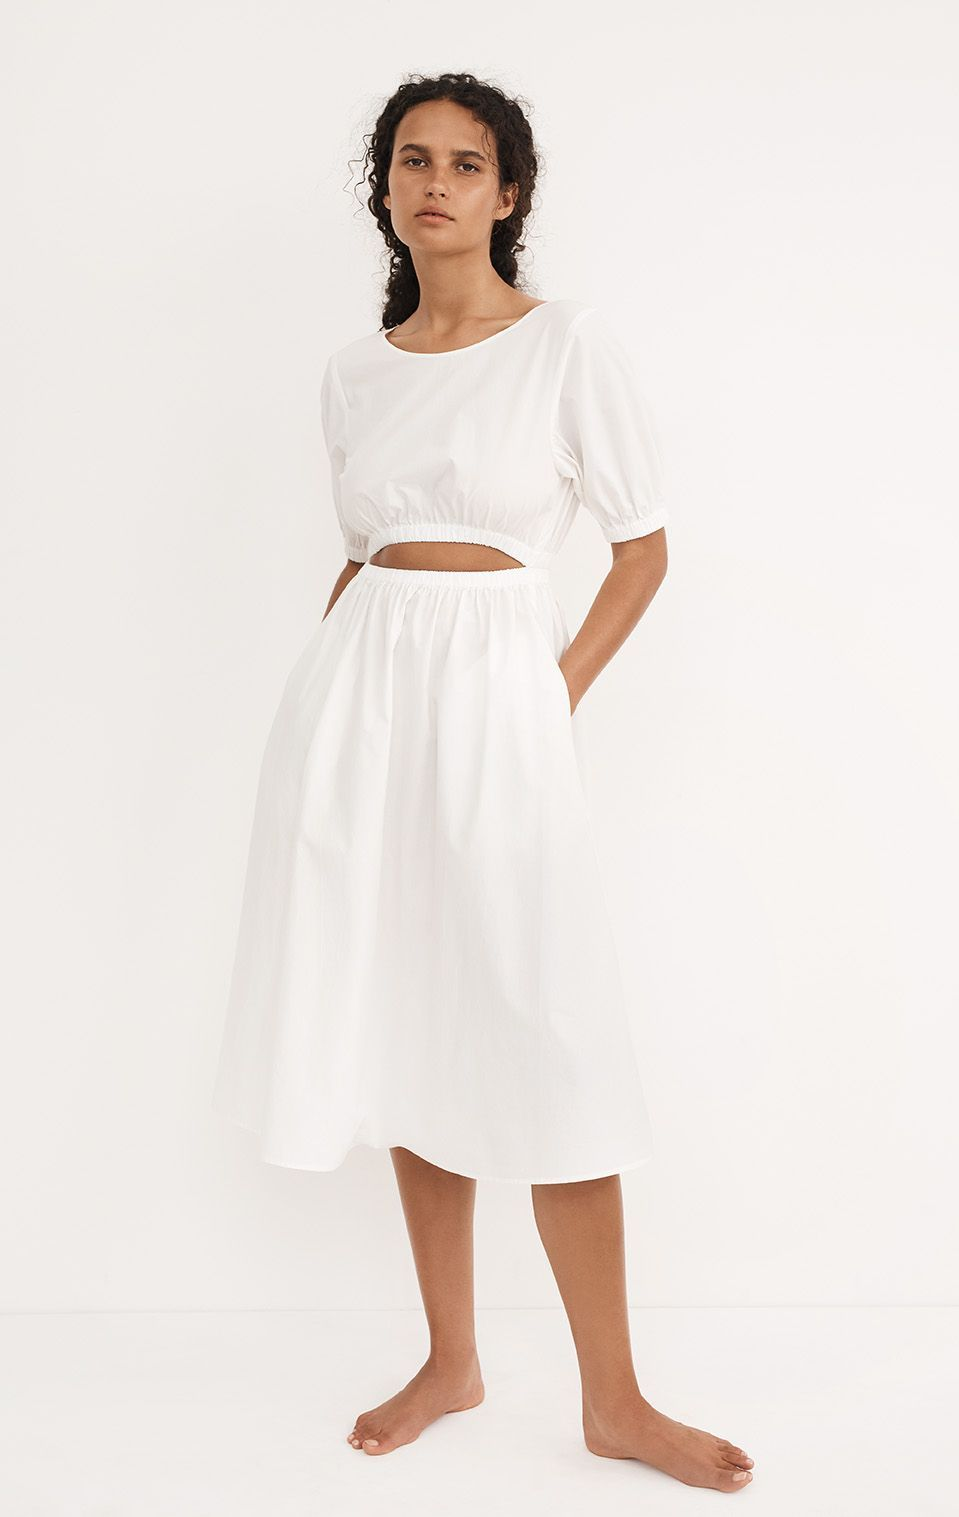 Lecce Dress in Coconut